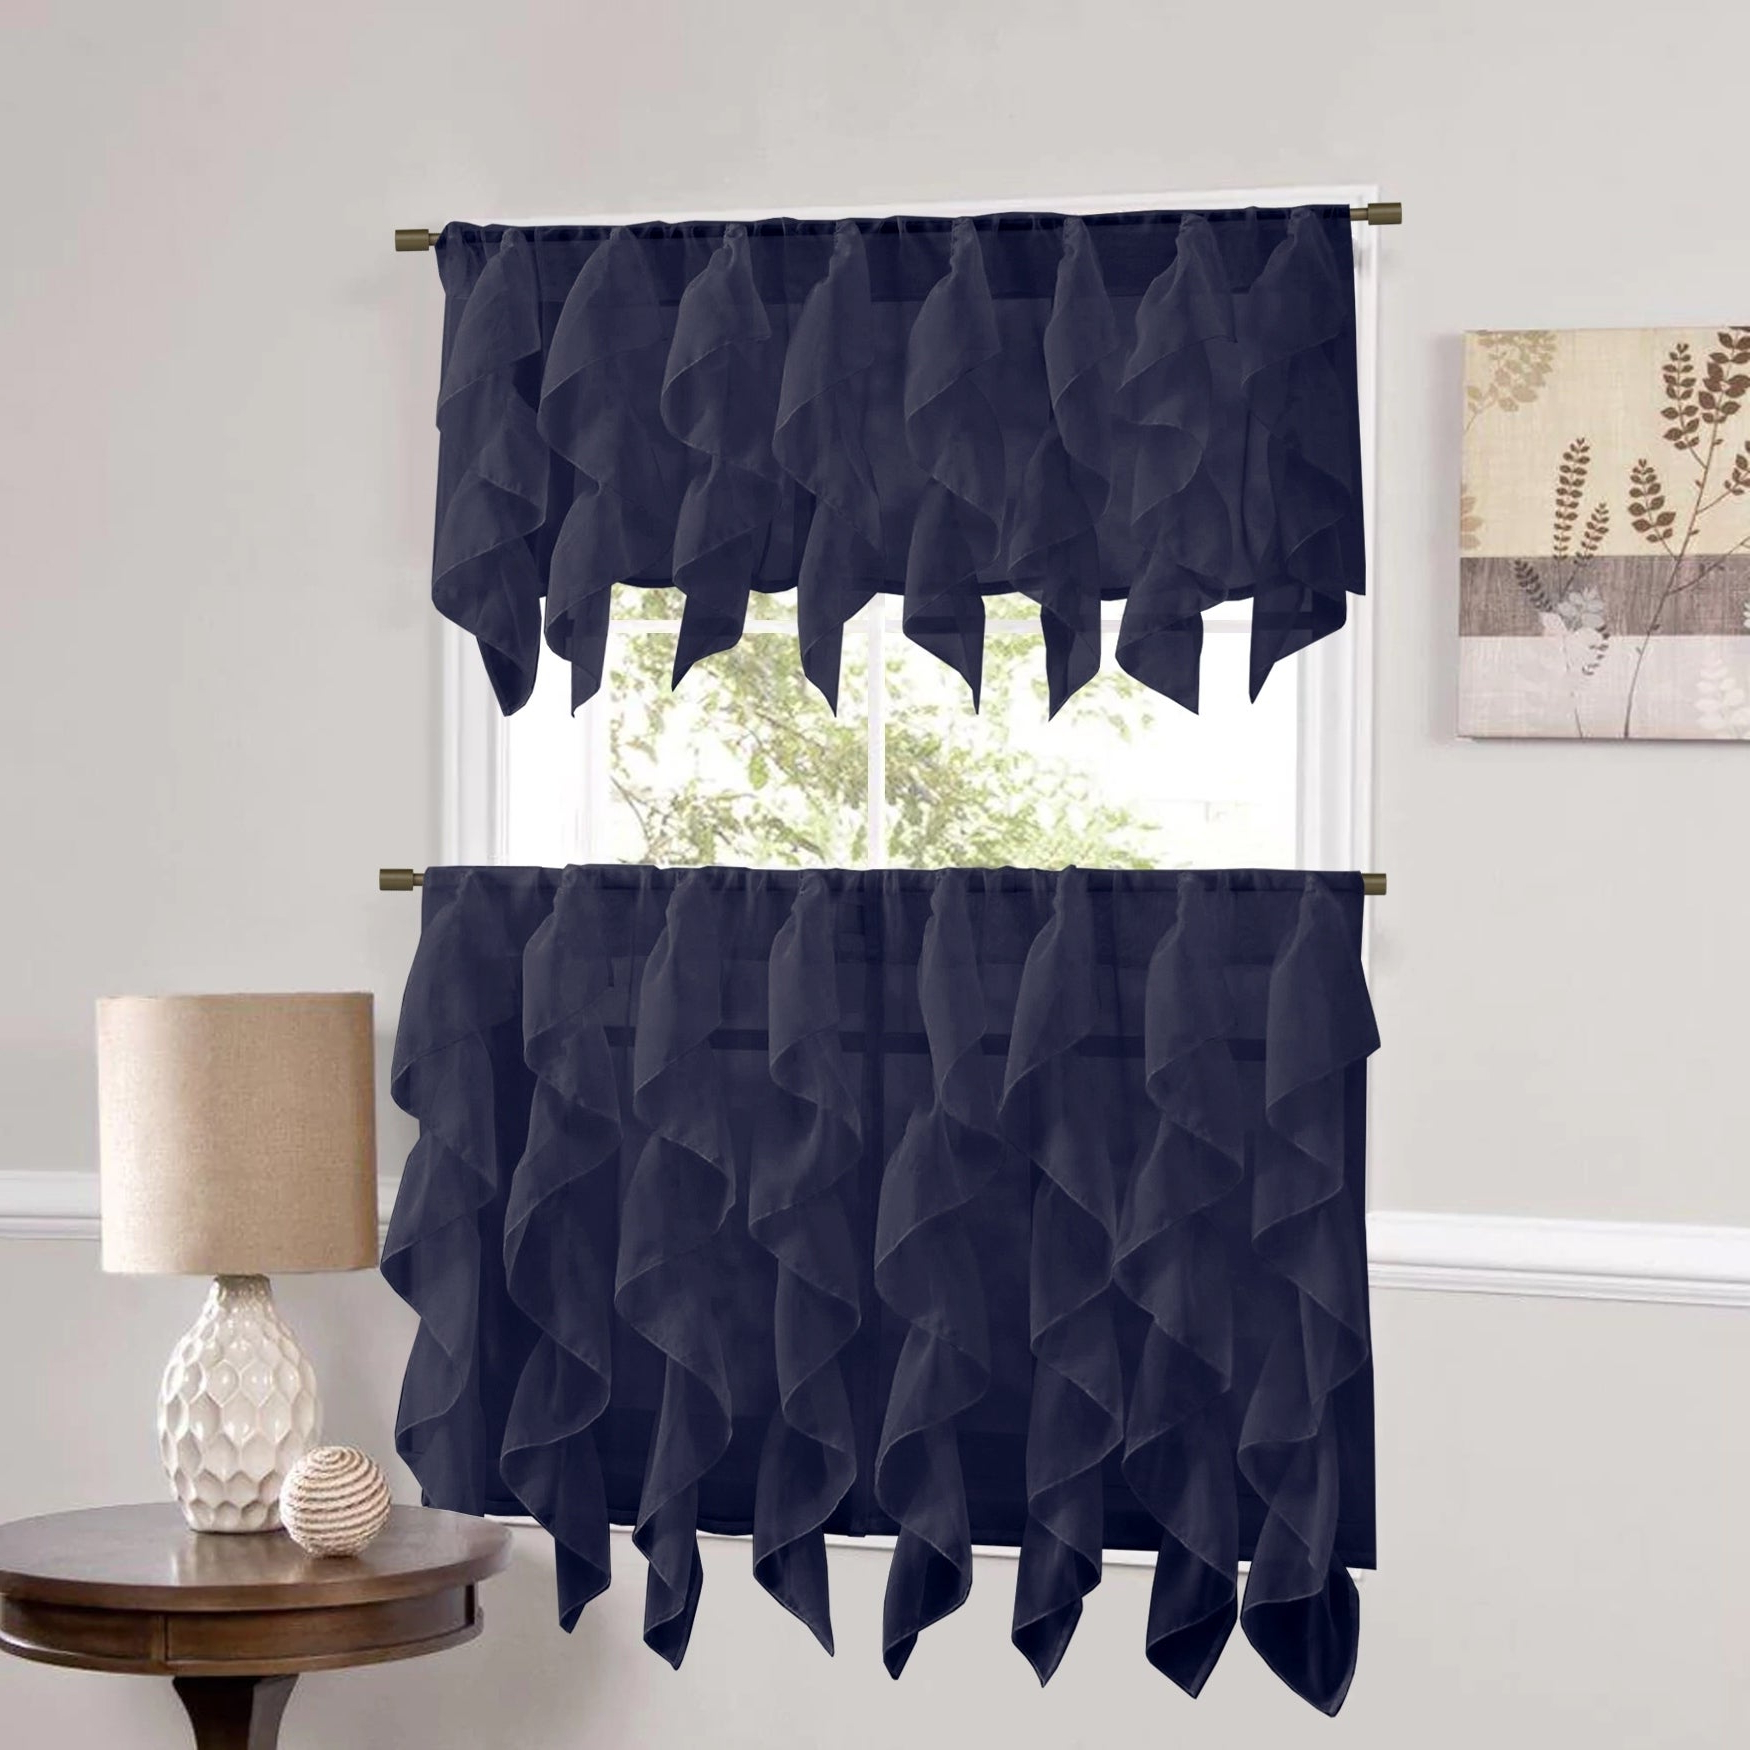 Sweet Home Collection Navy Vertical Ruffled Waterfall Valance And Curtain Tiers With Regard To Latest Silver Vertical Ruffled Waterfall Valance And Curtain Tiers (View 3 of 20)